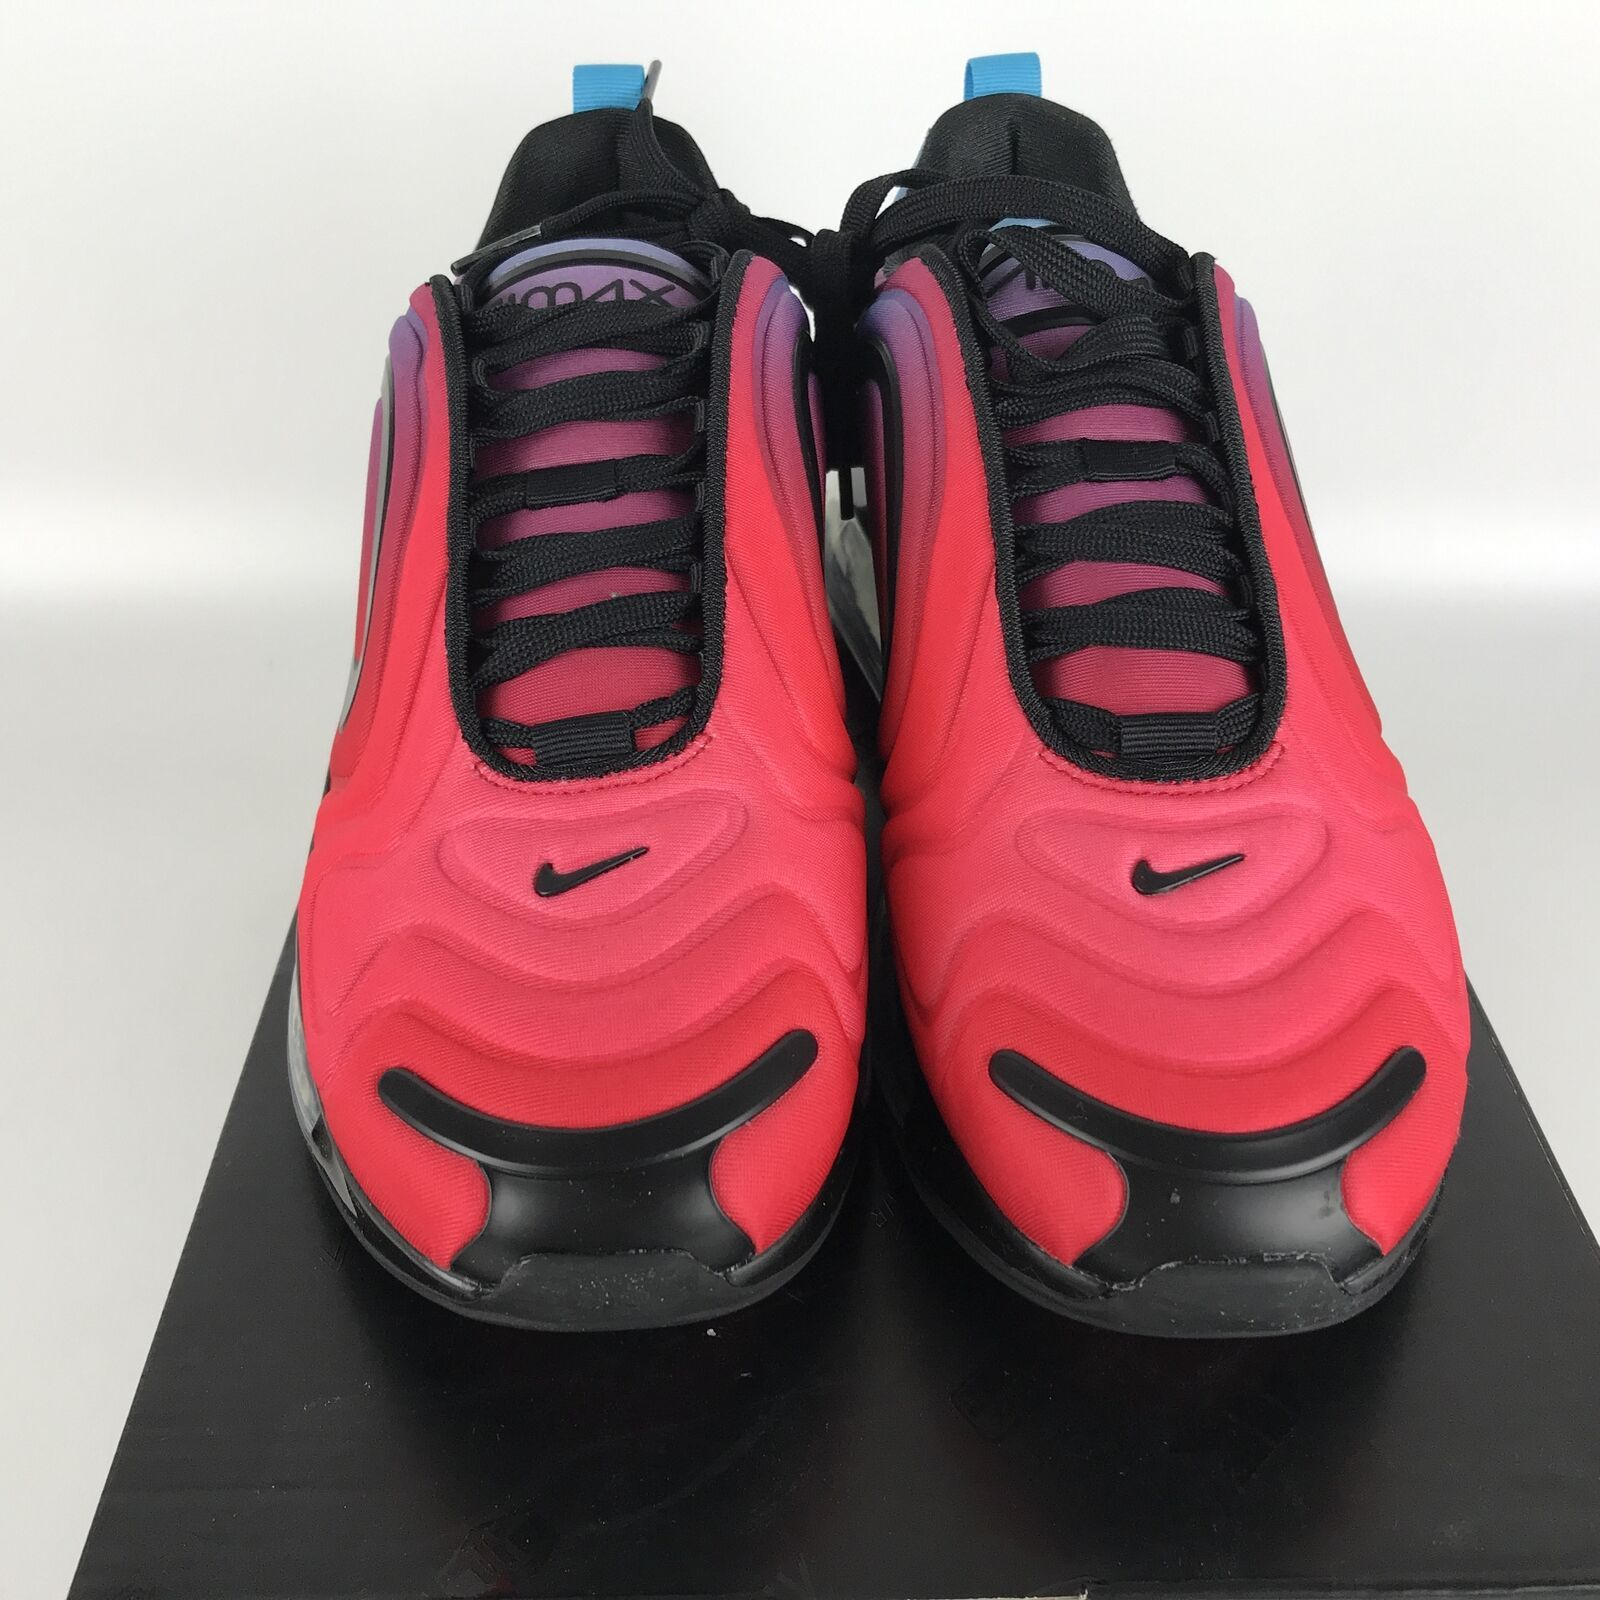 Nike Air Max 720 Running Shoes 8 Gradient Red/Blue CJ0766 600 image 3